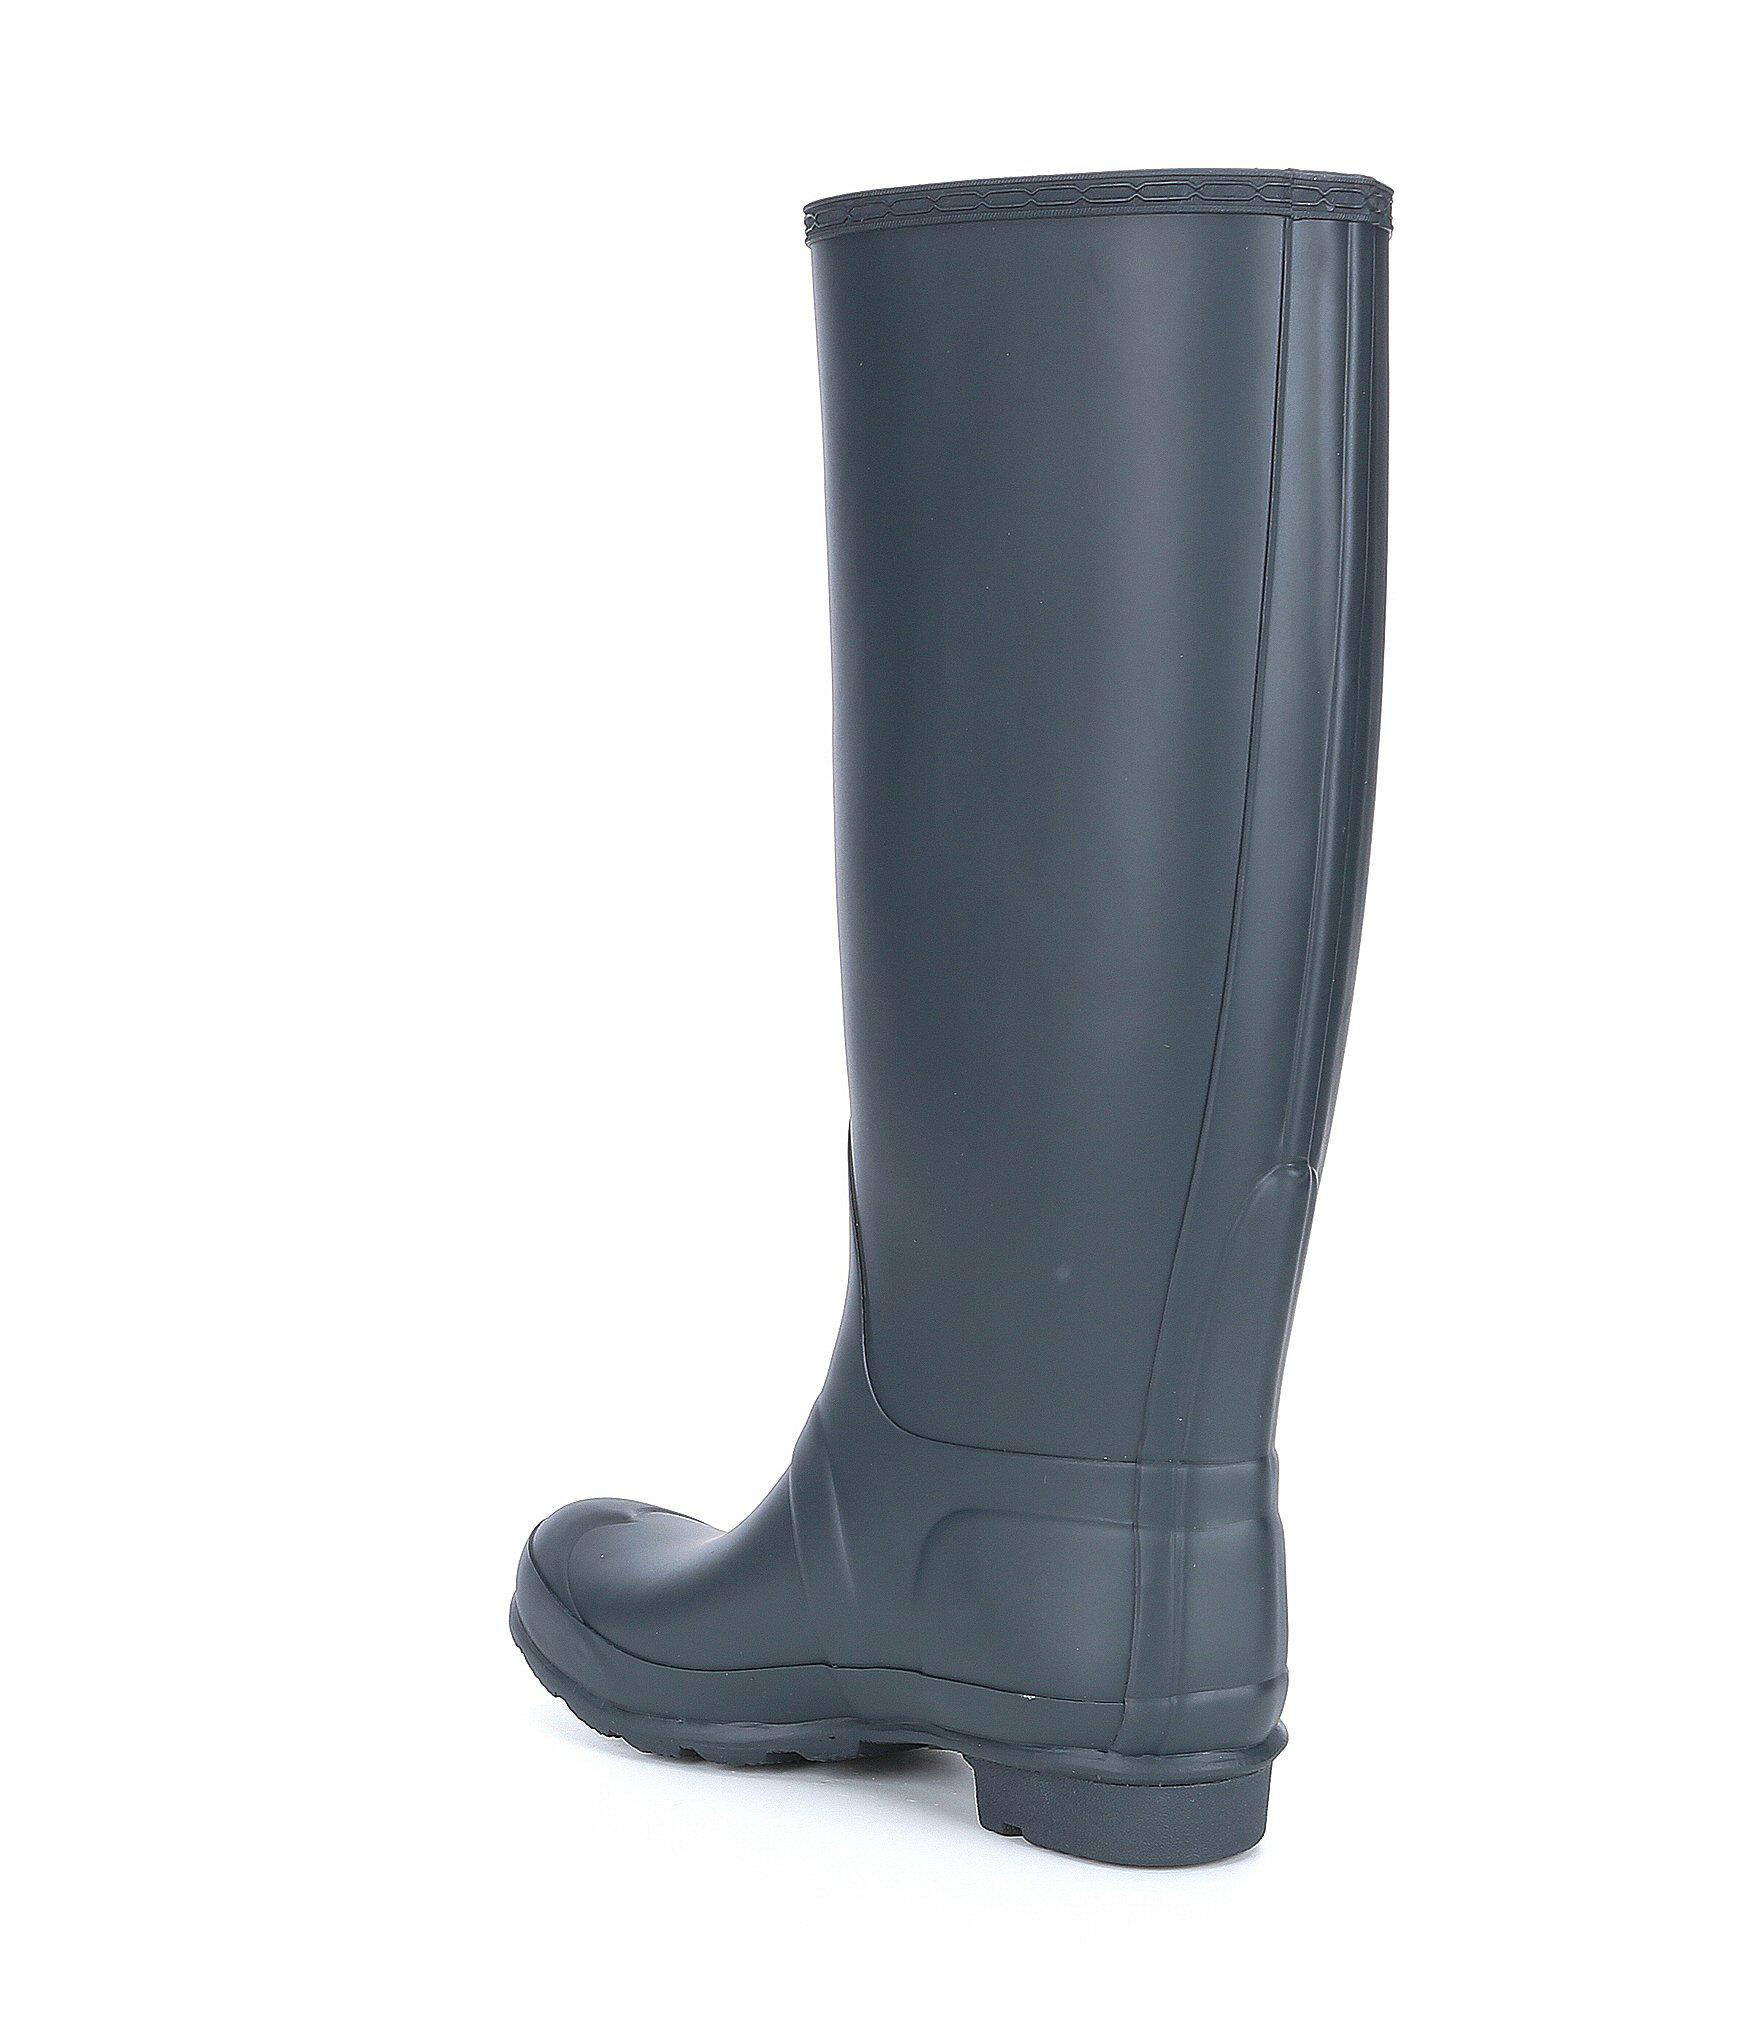 20b6417ecfec Hunter - Blue Women s Original Wide Calf Tall Rain Boots - Lyst. View  fullscreen